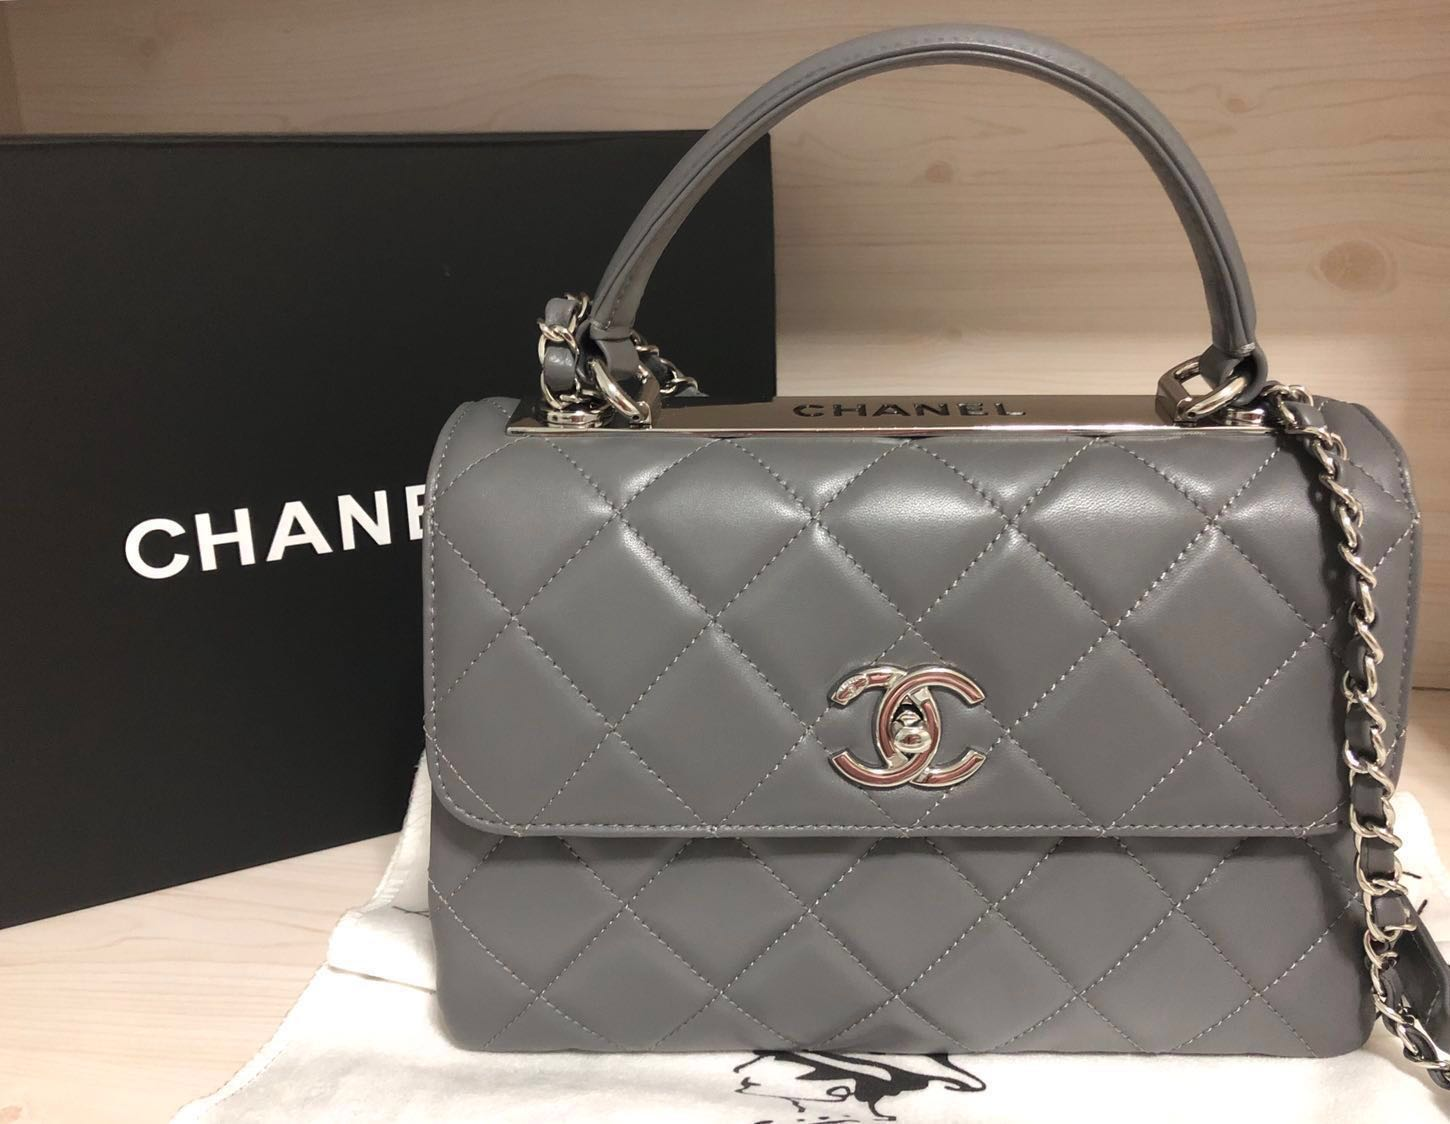 505860fe4ac8 Brand New Authentic Chanel Lambskin with Silver Tone Metal Small Flap Bag  with Top Handle Retail SGD7470 Full Set with Dust Bag